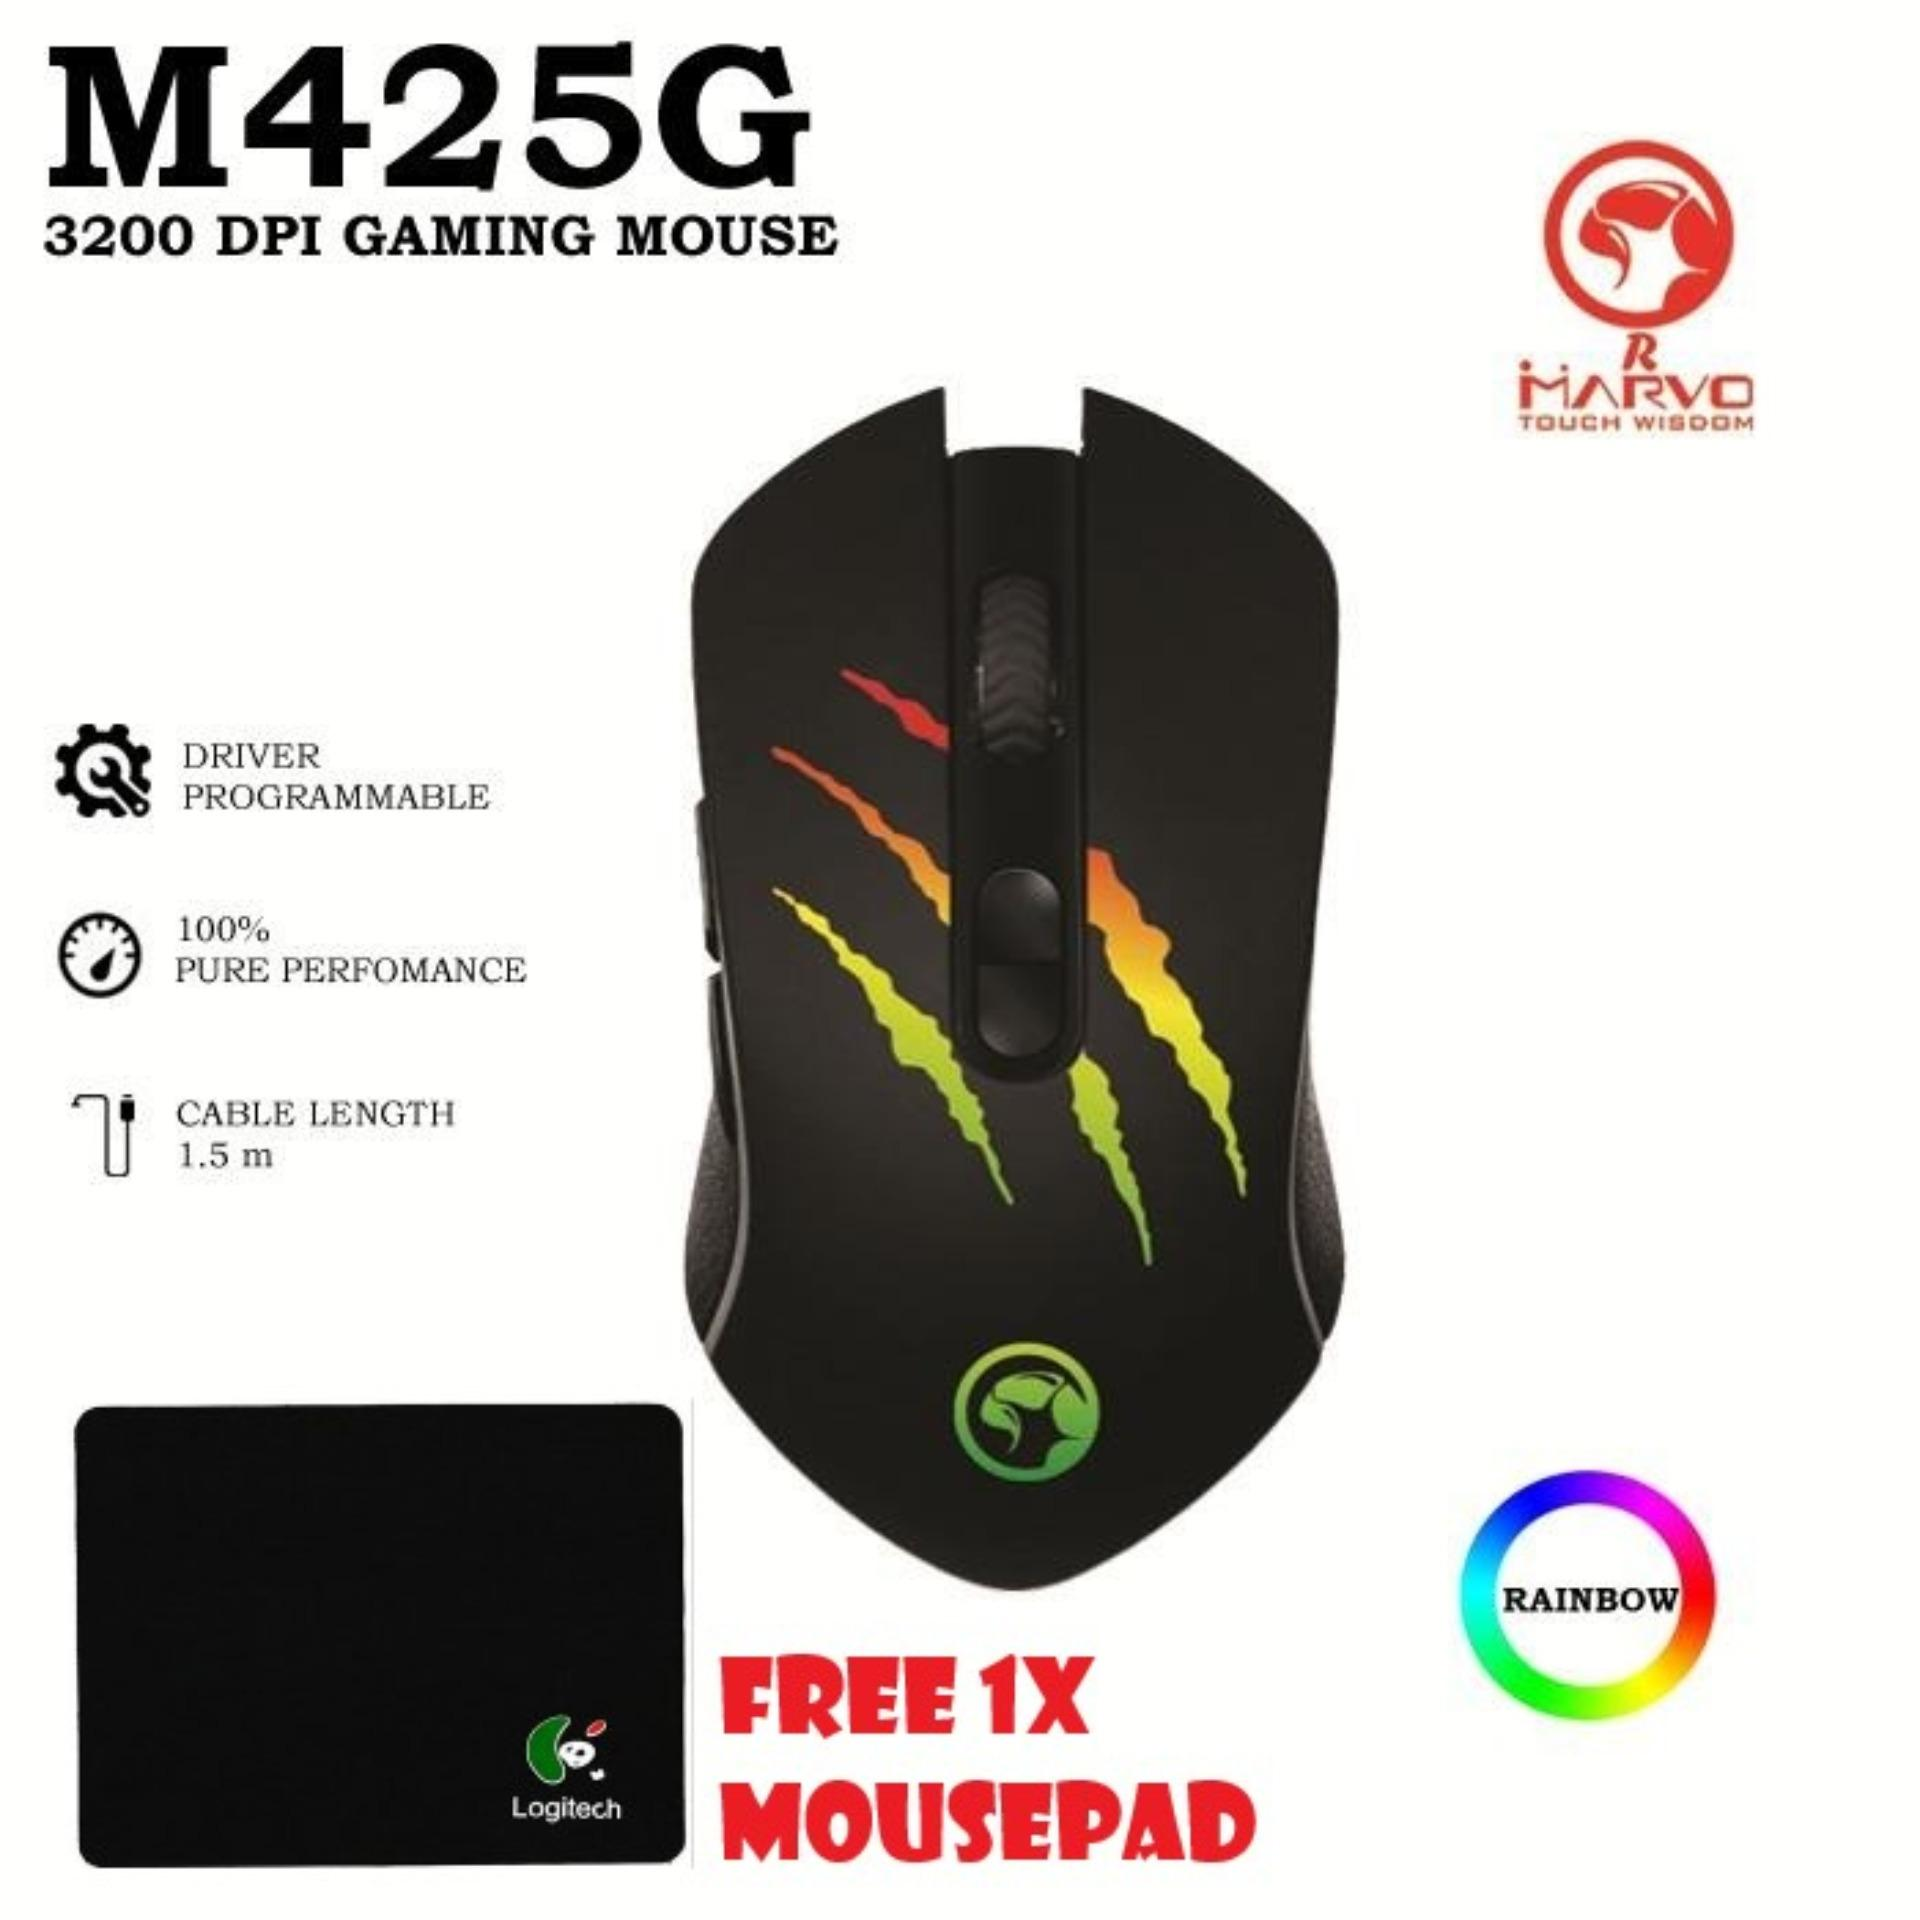 https://www.lazada.co.id/products/marvo-m425g-gaming-mouse-scorpion-rgb-mouse-pad-hitam-hitam-i8384869-s10750900.html